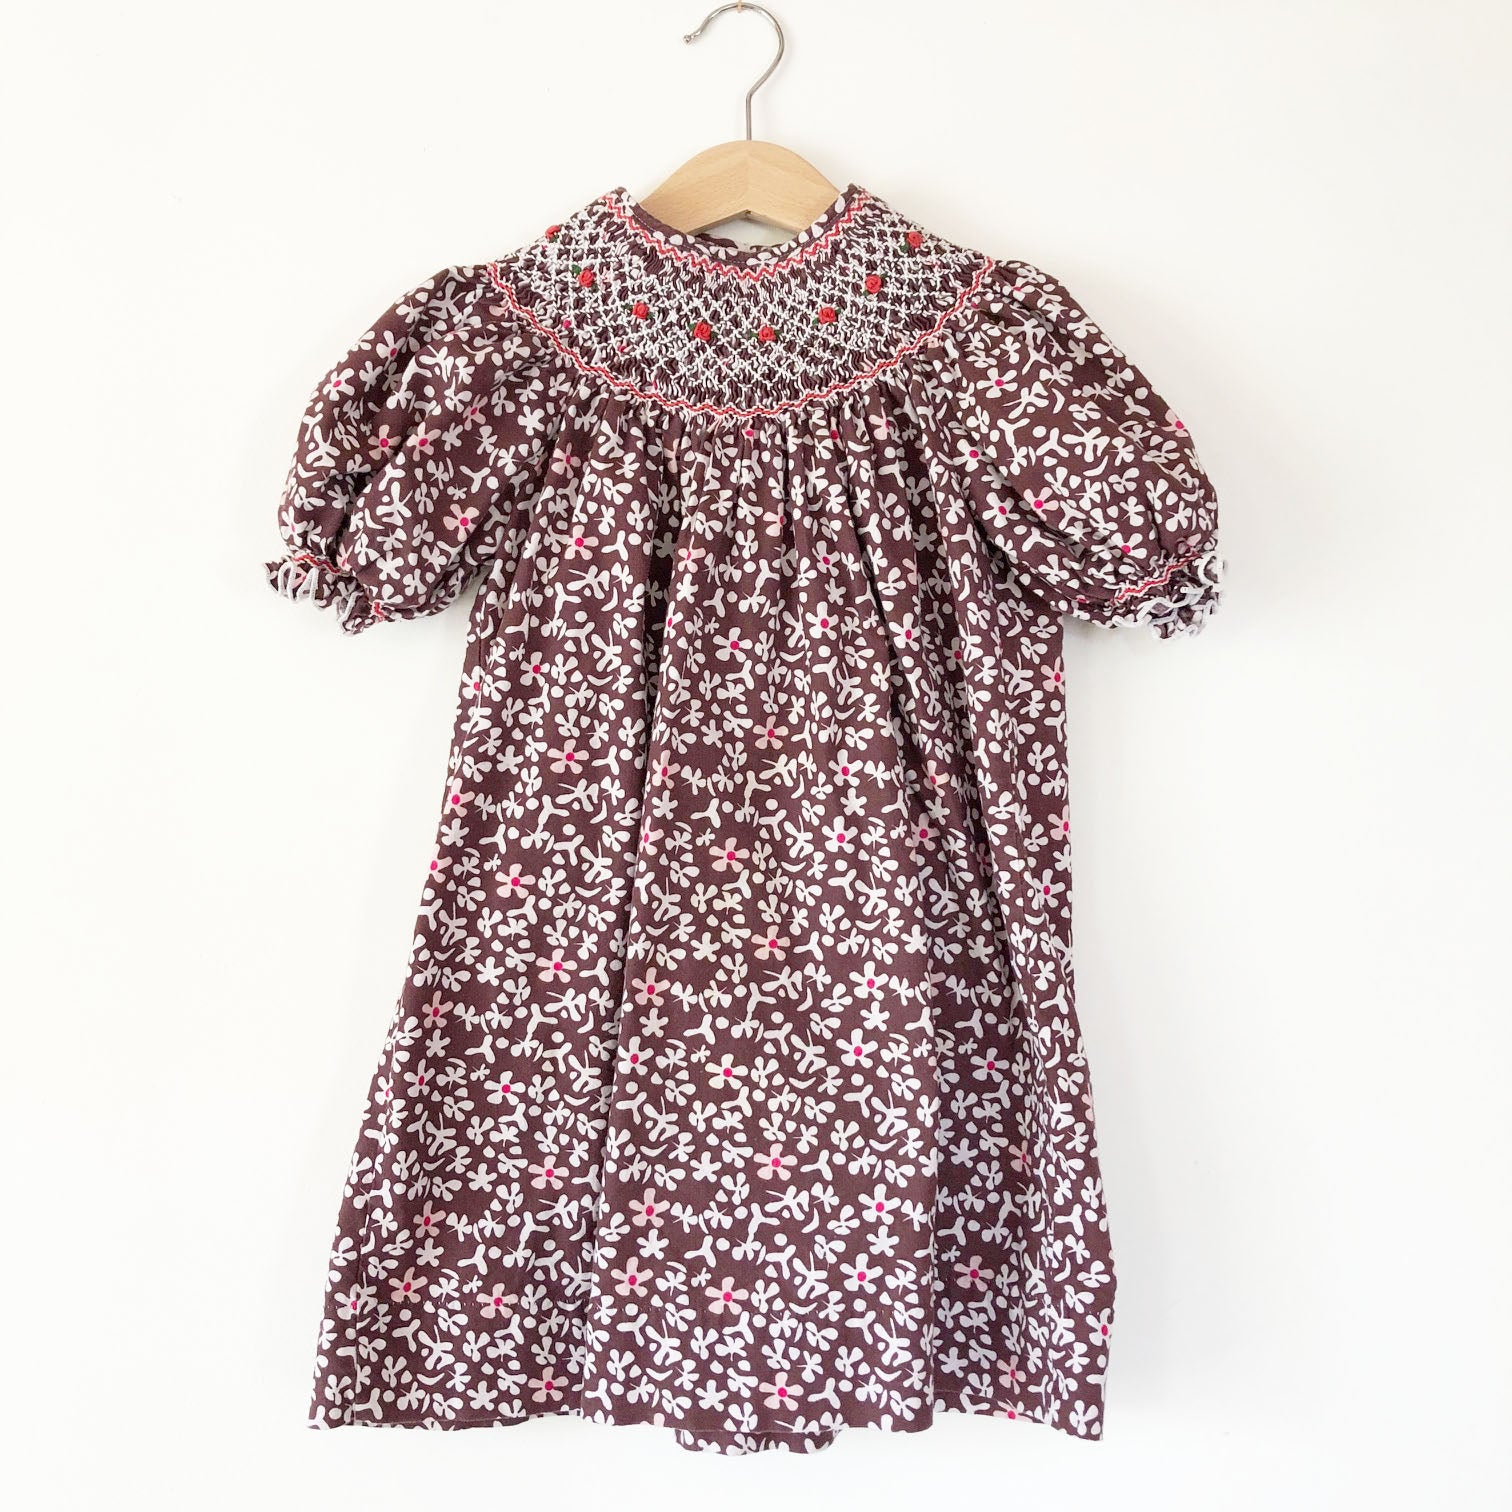 Little Smocked Floral dress size 2-3